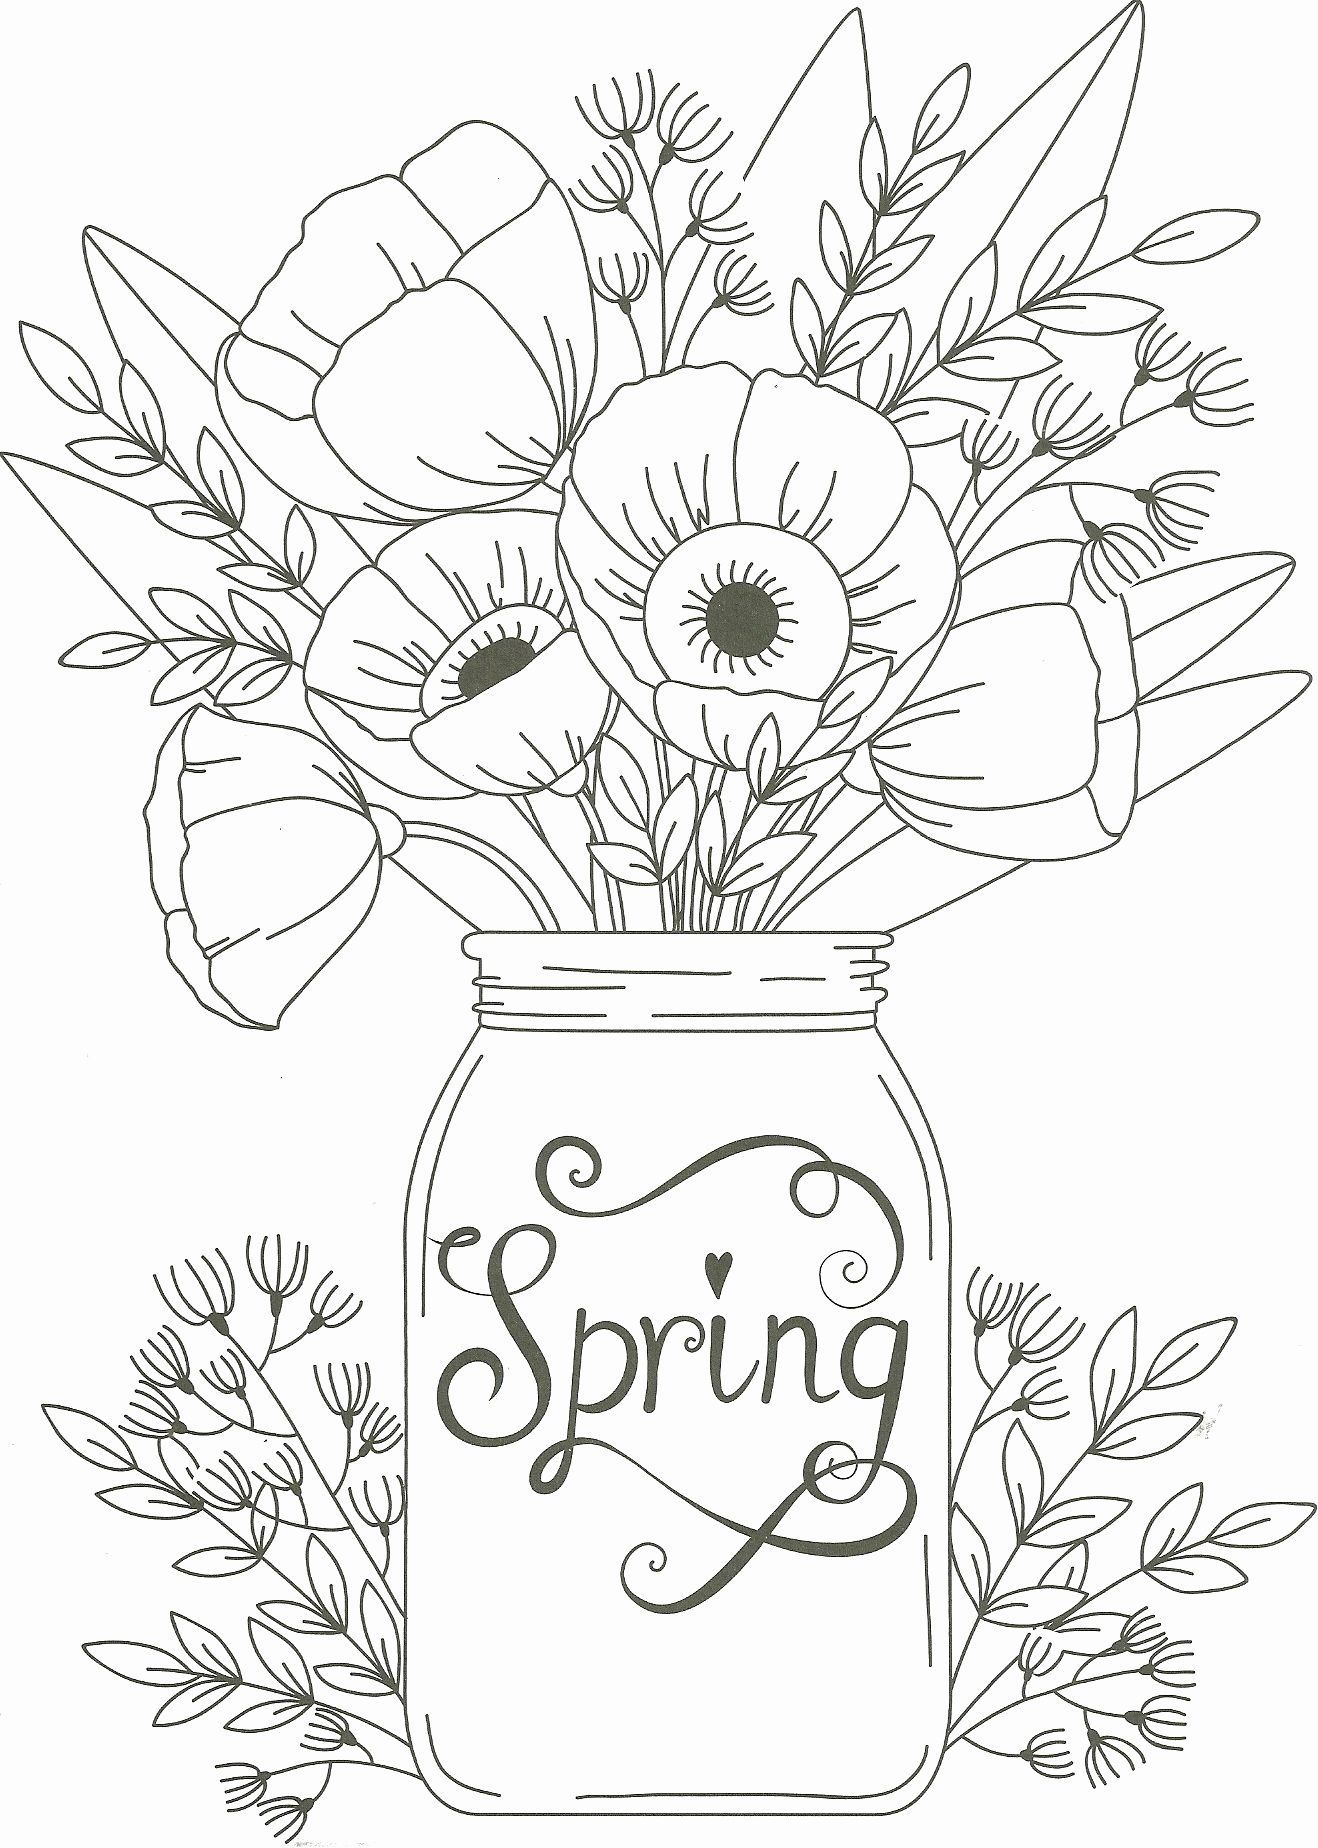 Spring Coloring Sheets For Adults Best Of Spring Mason Jar Floral Coloring Page Adults Colo Spring Coloring Sheets Spring Coloring Pages Easter Coloring Pages